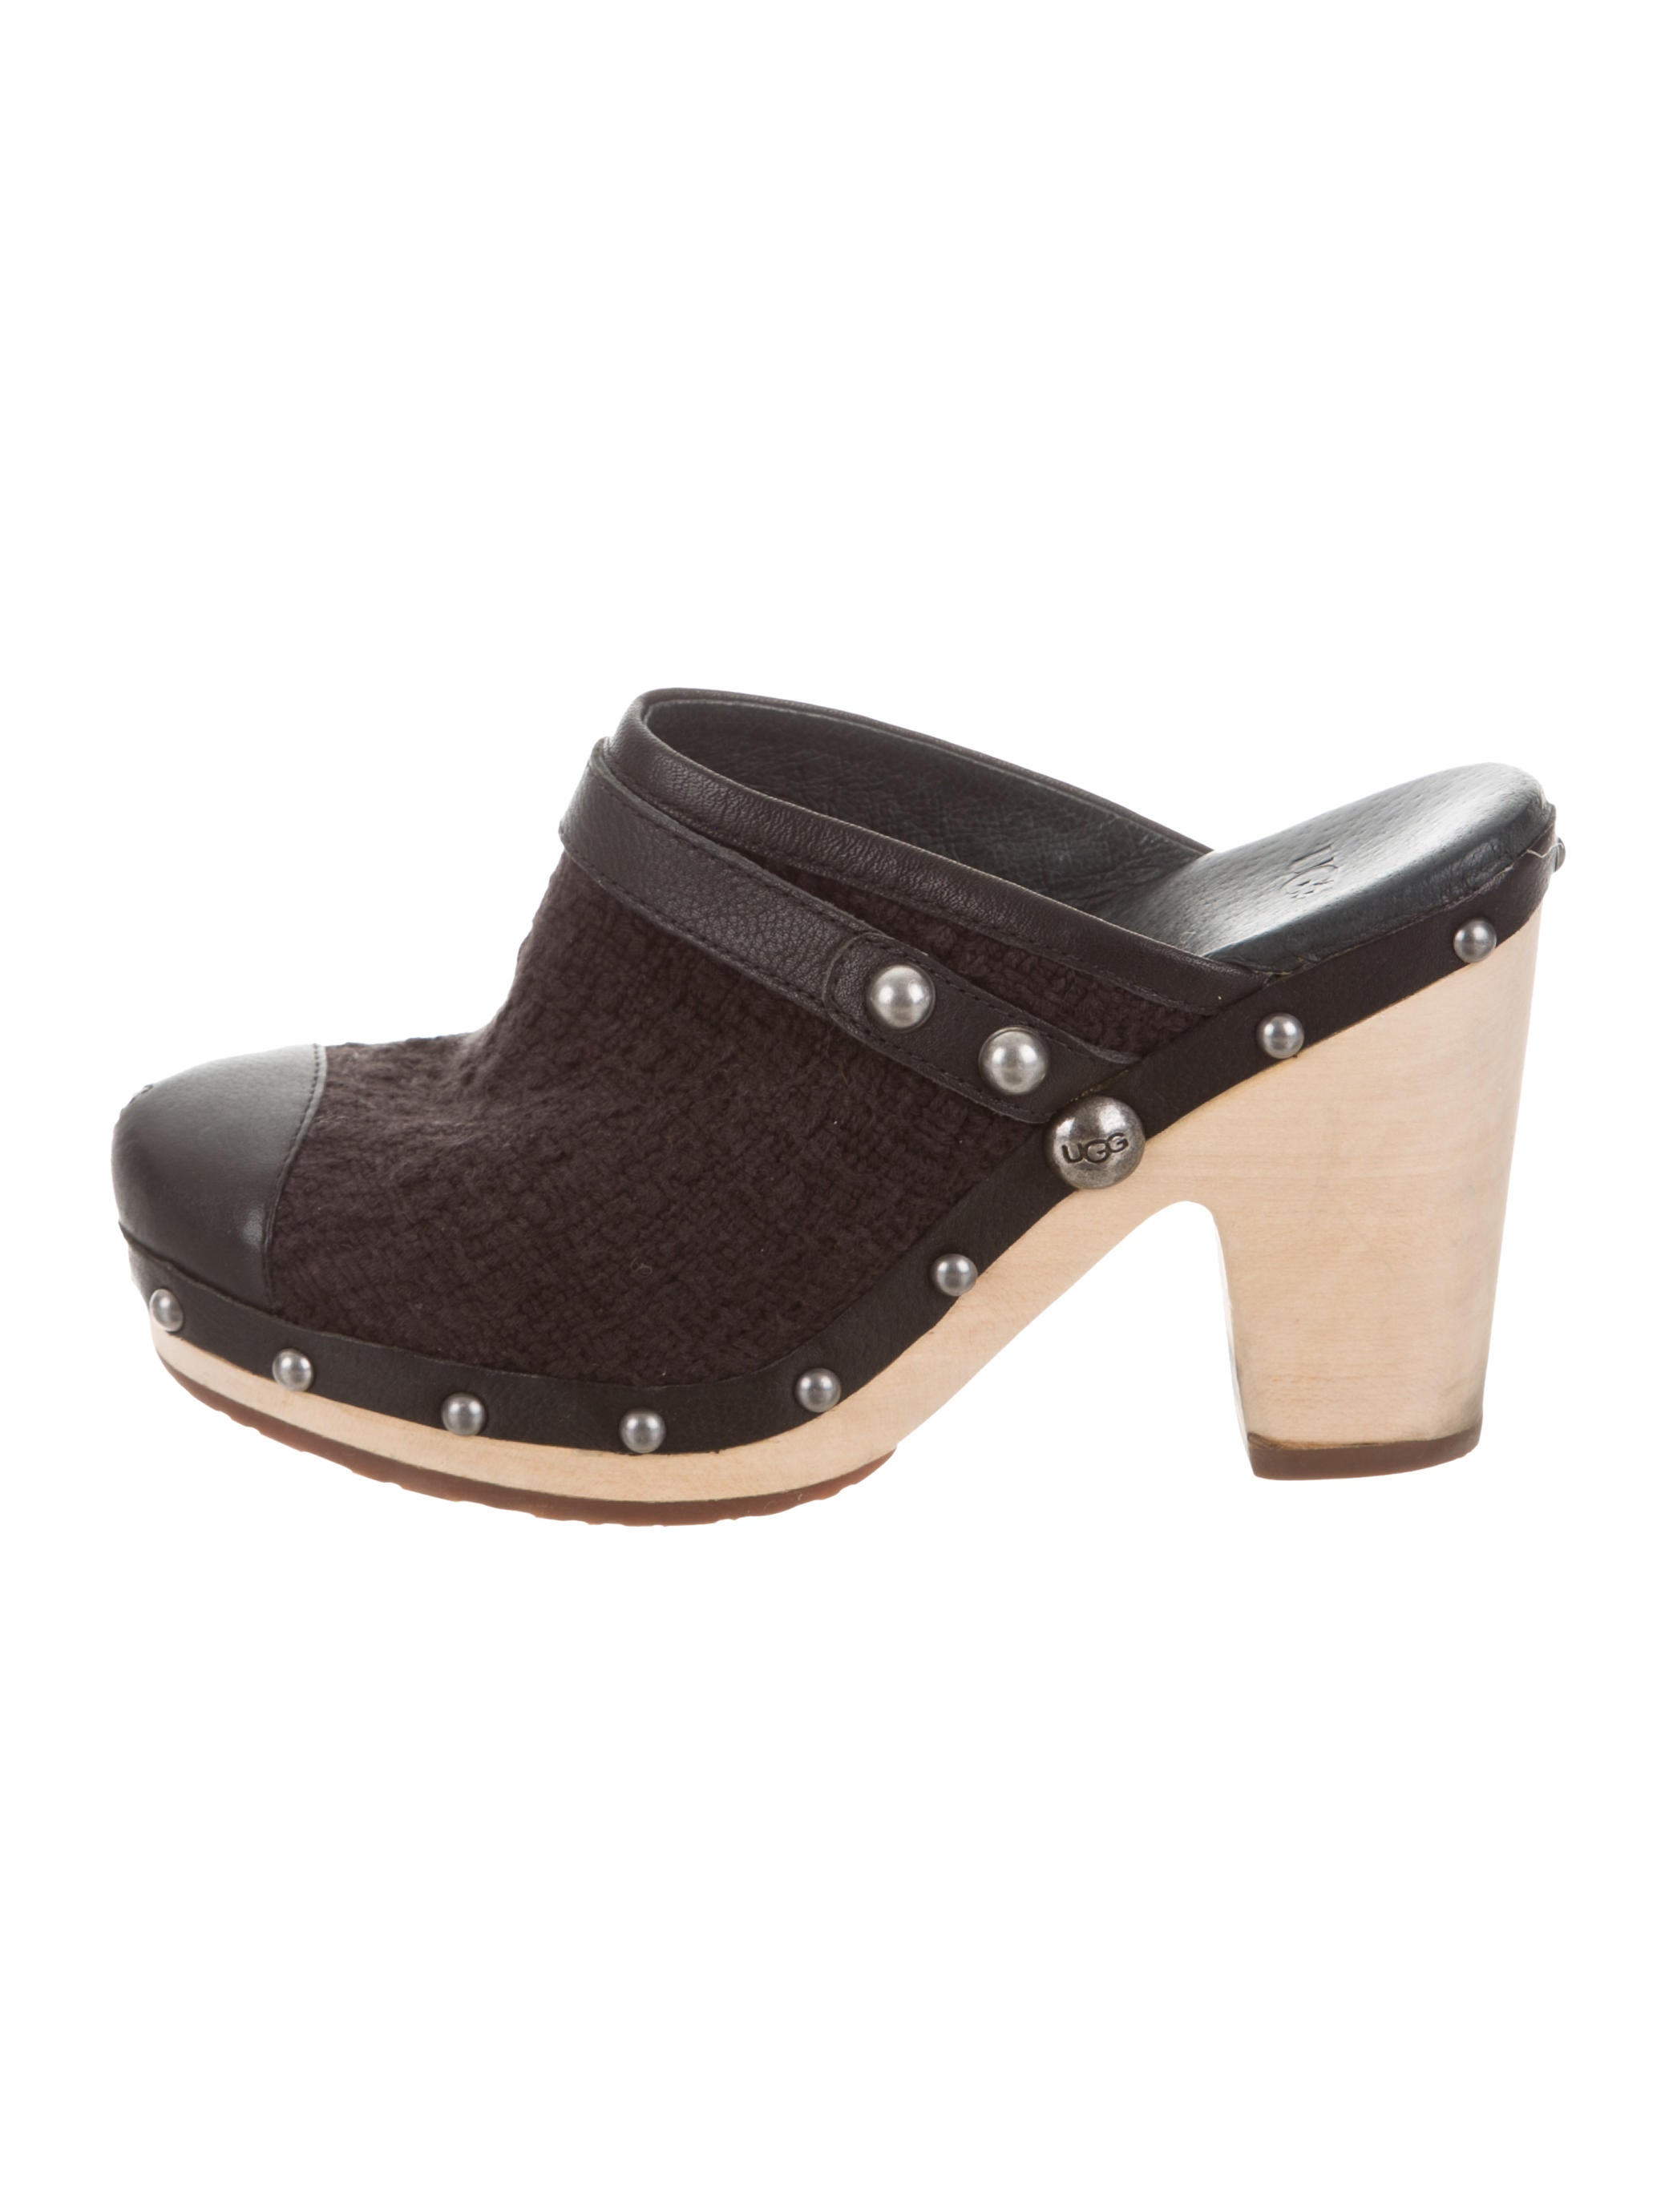 UGG Australia Tweed Round-Toe Mules factory outlet online zWXSPY9bH